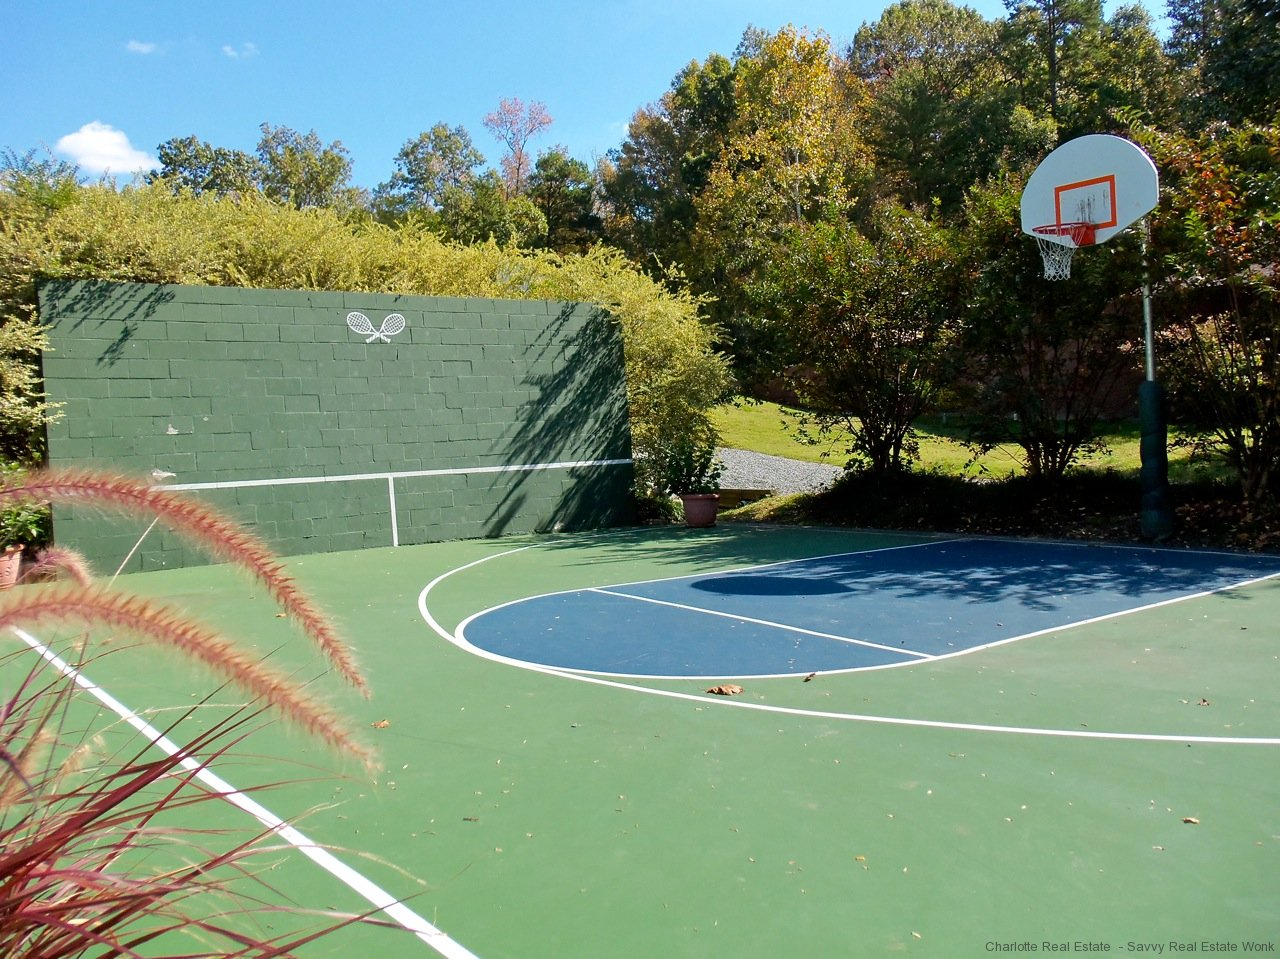 Basketball and handball courts in Providence Plantation